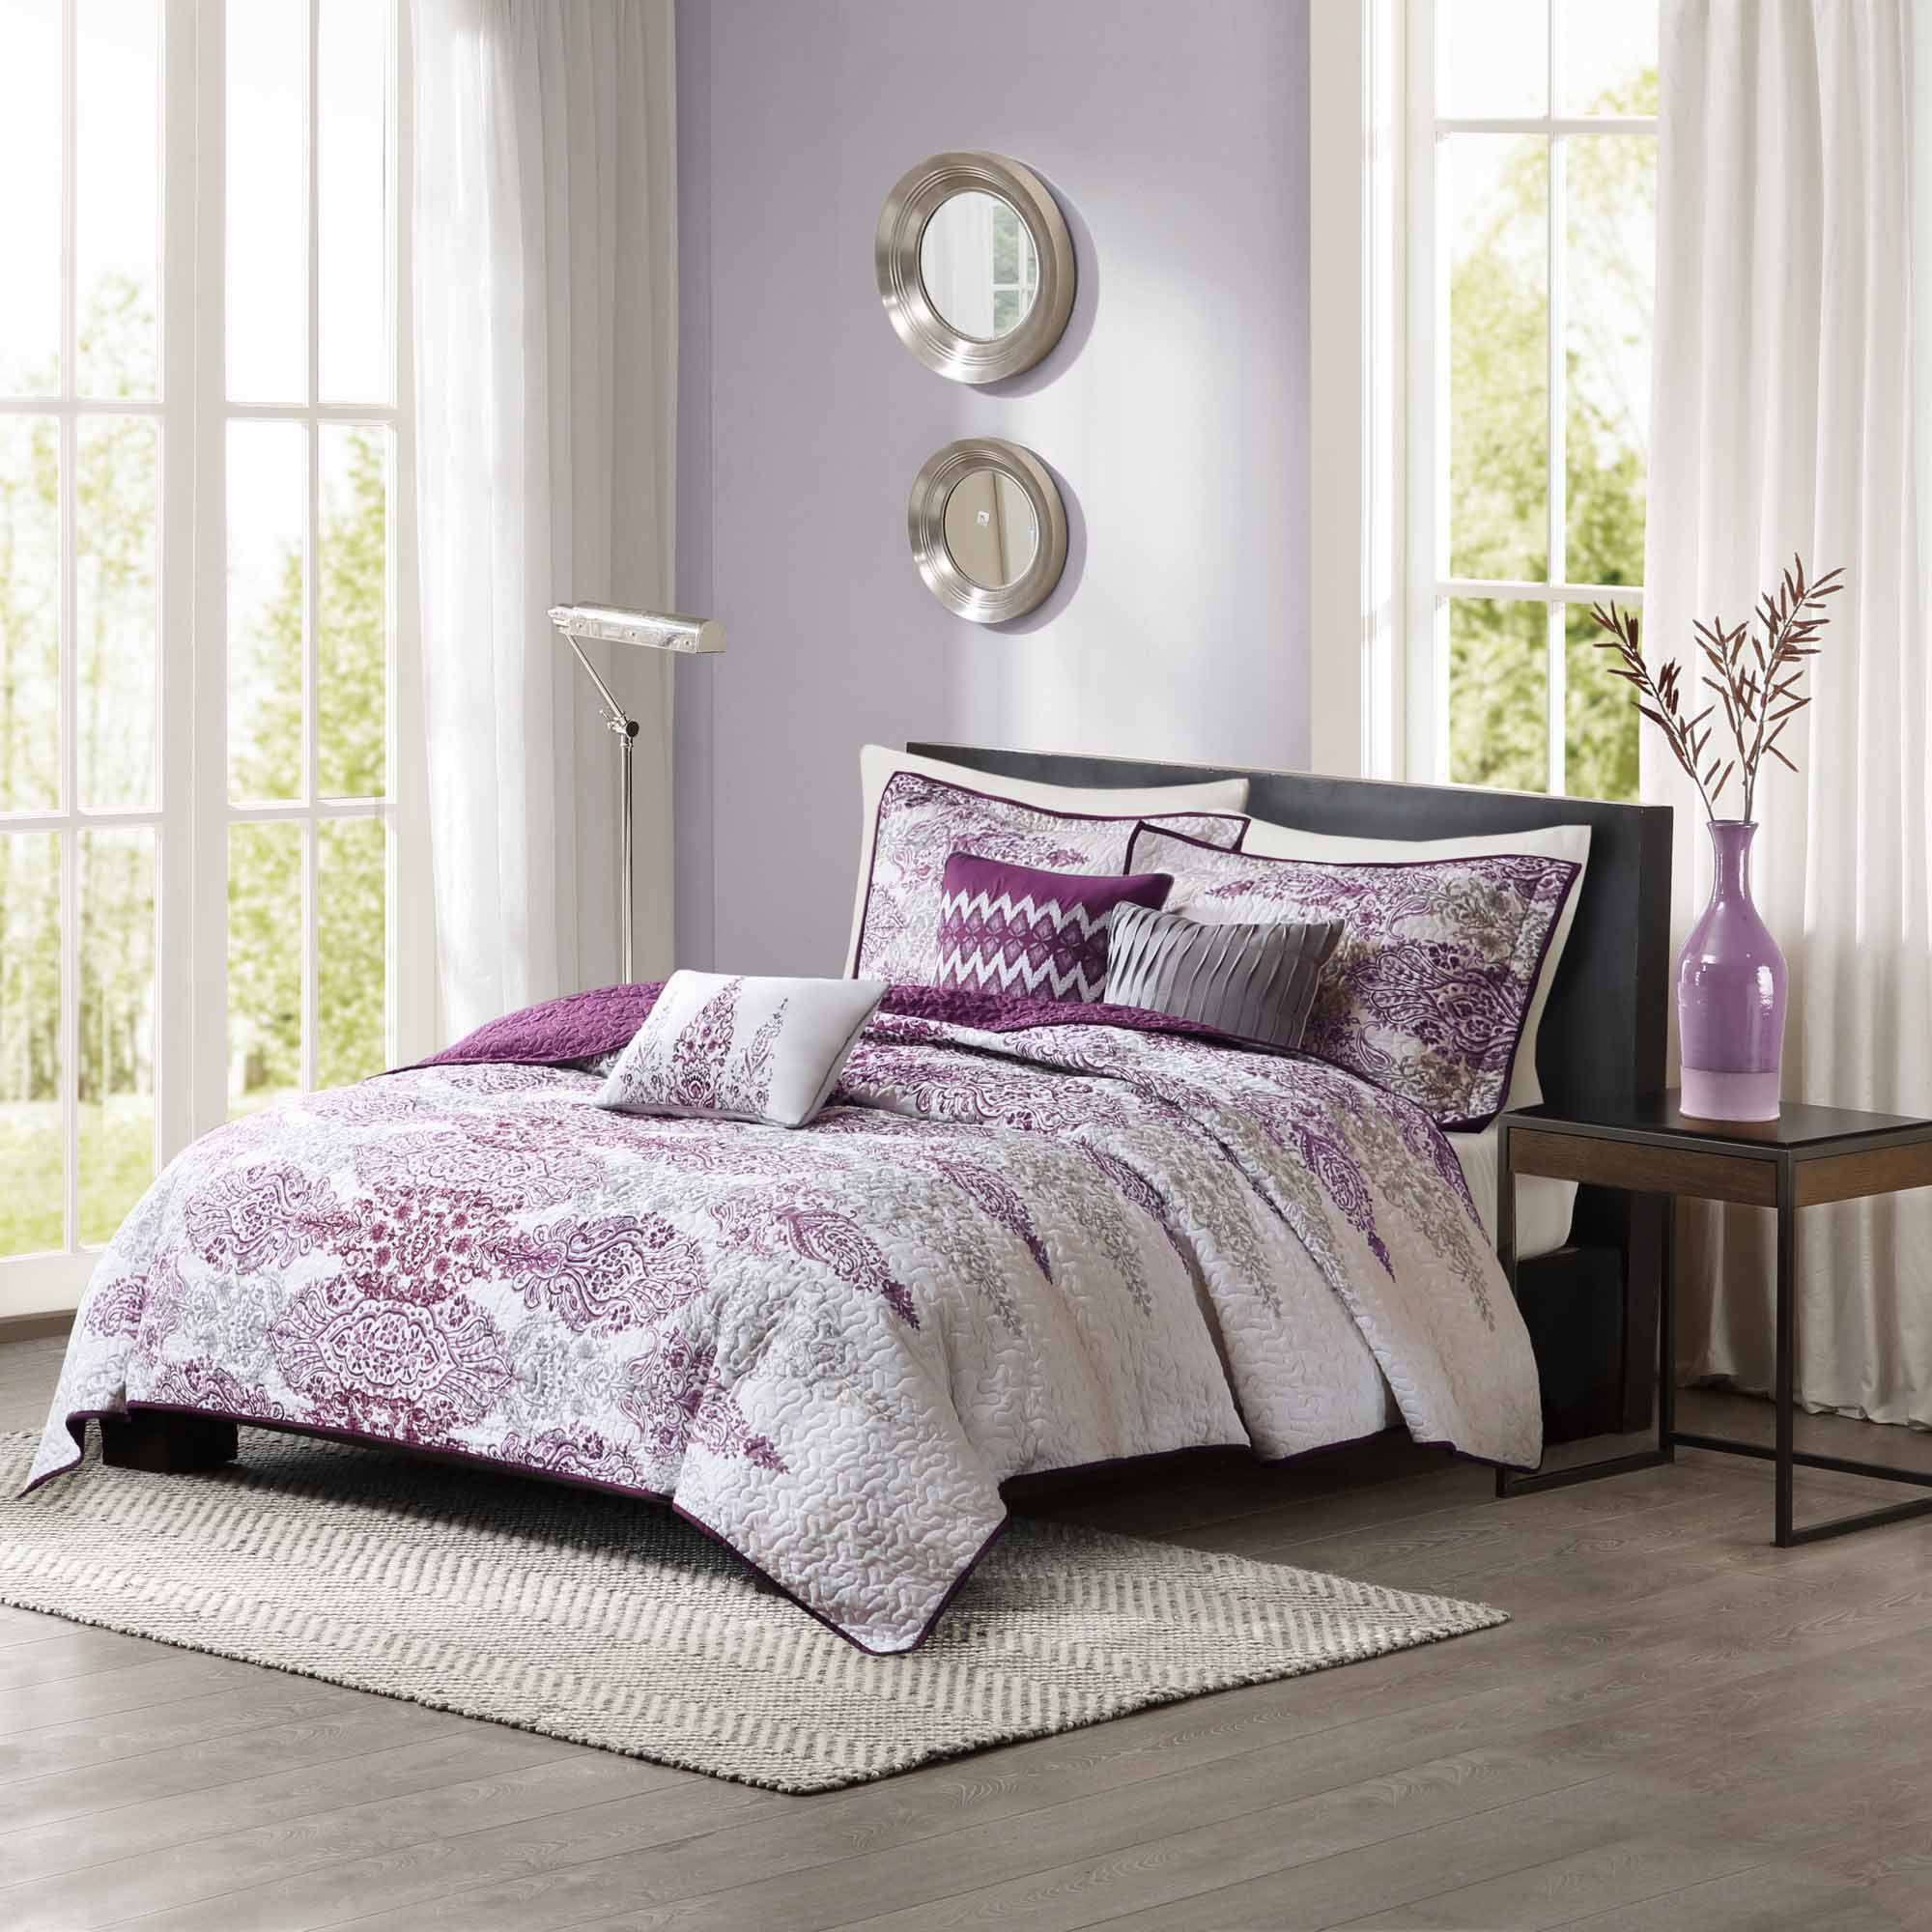 home coverlet walmart quilted ip com menara quilt bedspread essence set